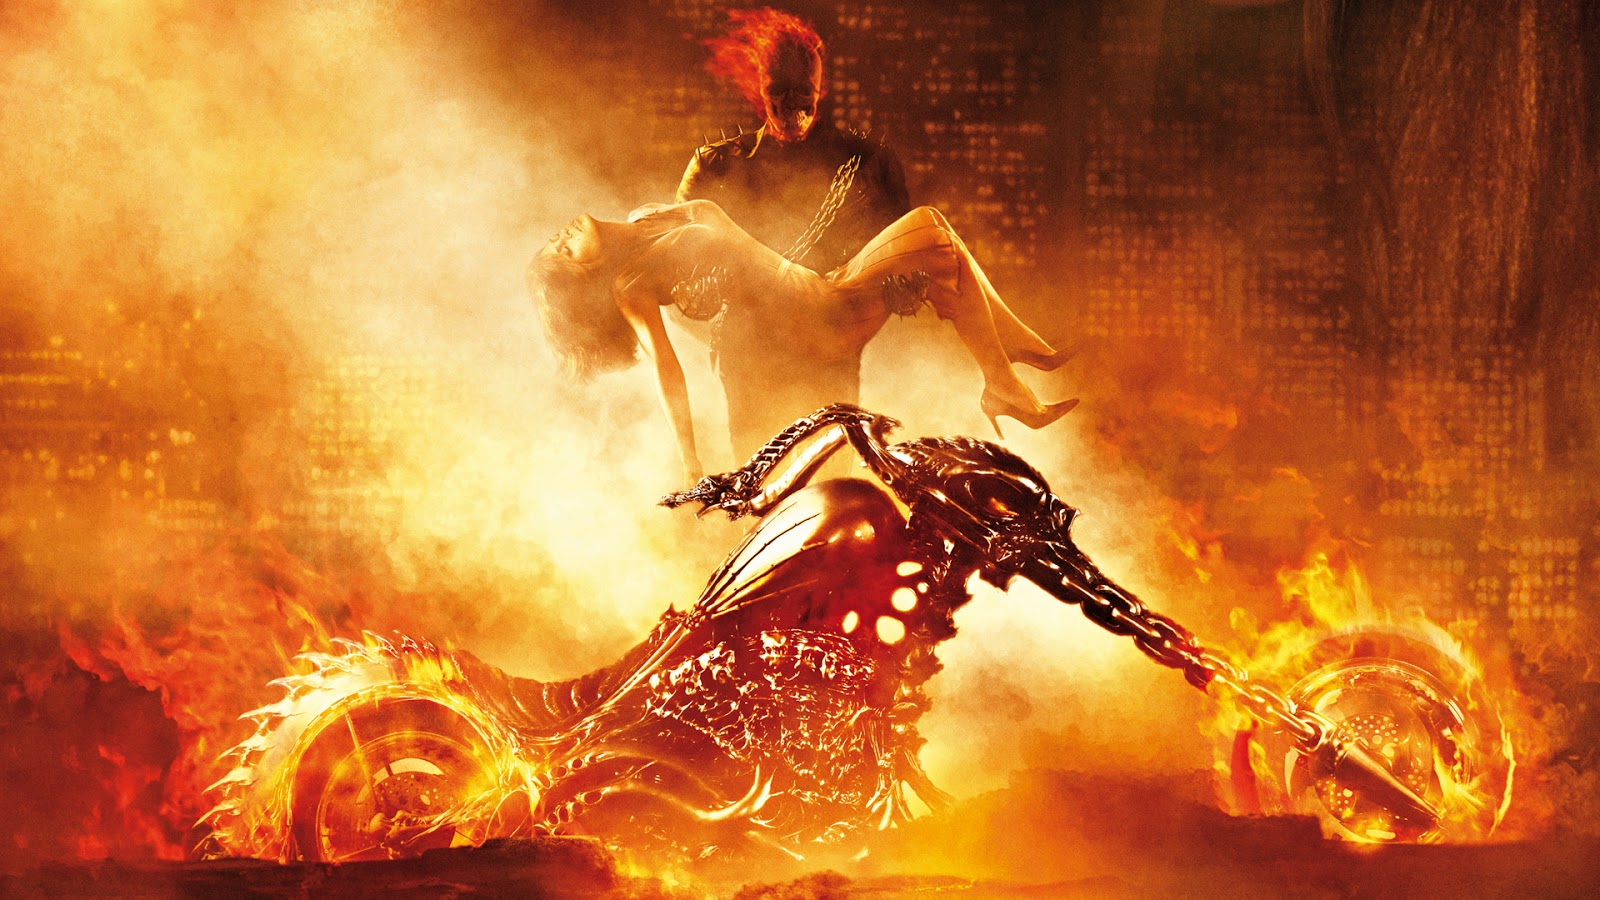 Real Ghost Wallpapper Top 10 Collection Of Ghost Rider Hd